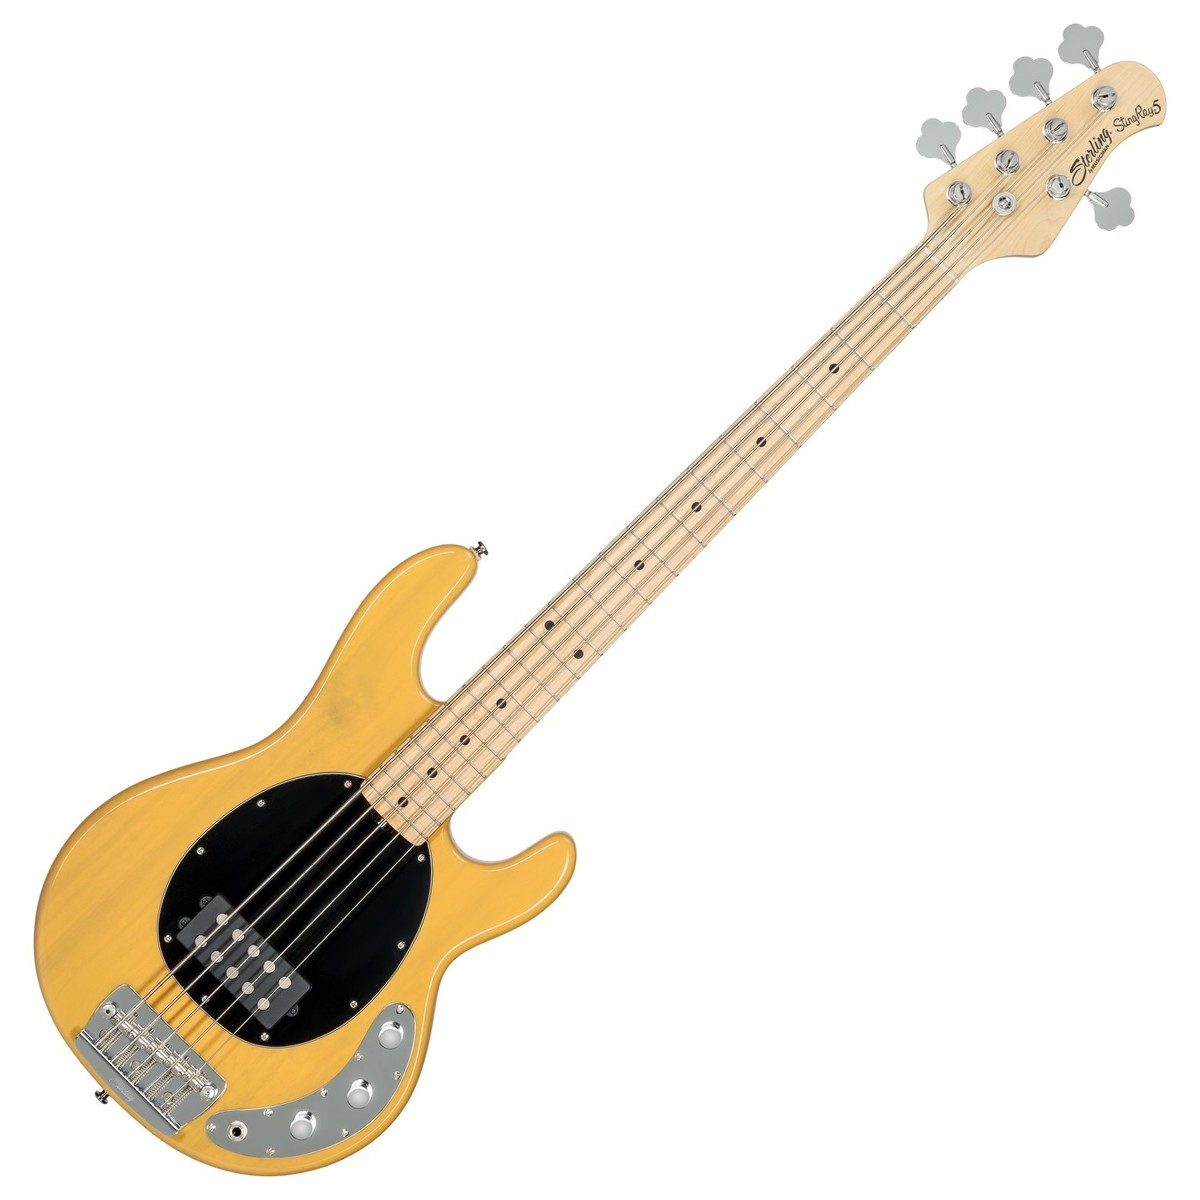 sterling by music man stingray5 classic 5 string bass butterscotch at gear4music. Black Bedroom Furniture Sets. Home Design Ideas